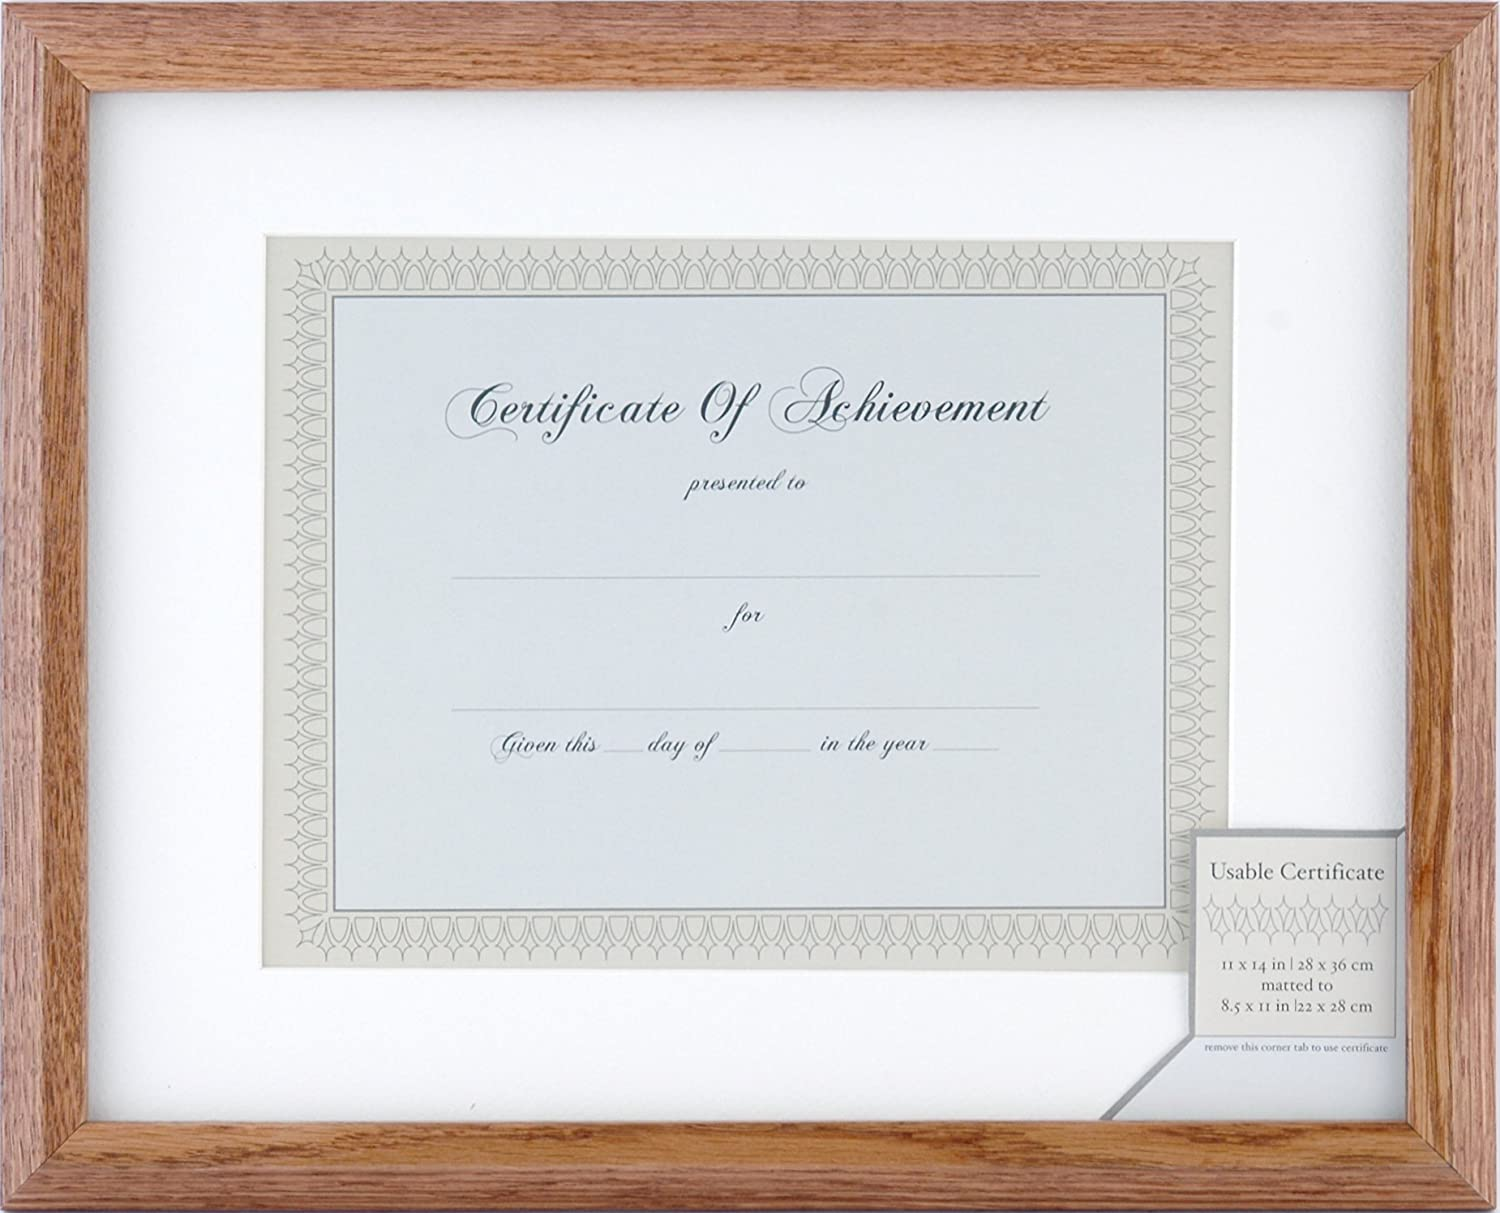 Gallery Solutions 25DG22 Natural Wide Stepped Wood Document Frame with Usable Certificate, 8-1/2 by 11-Inch NBG Home